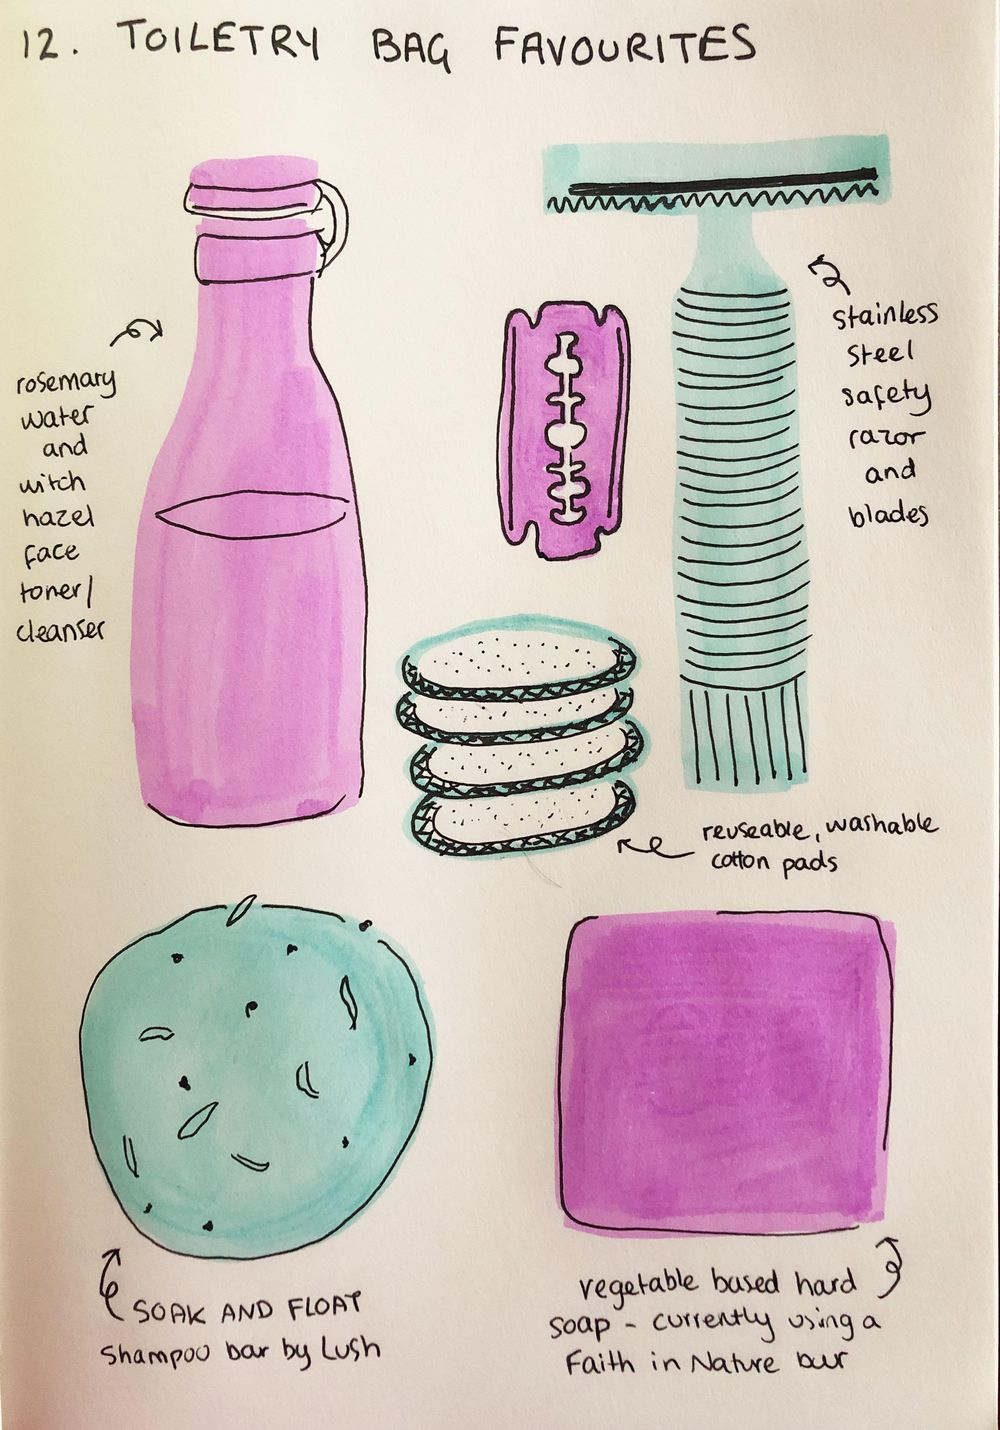 Daily Illustrated Journaling Prompts - image 3 - student project